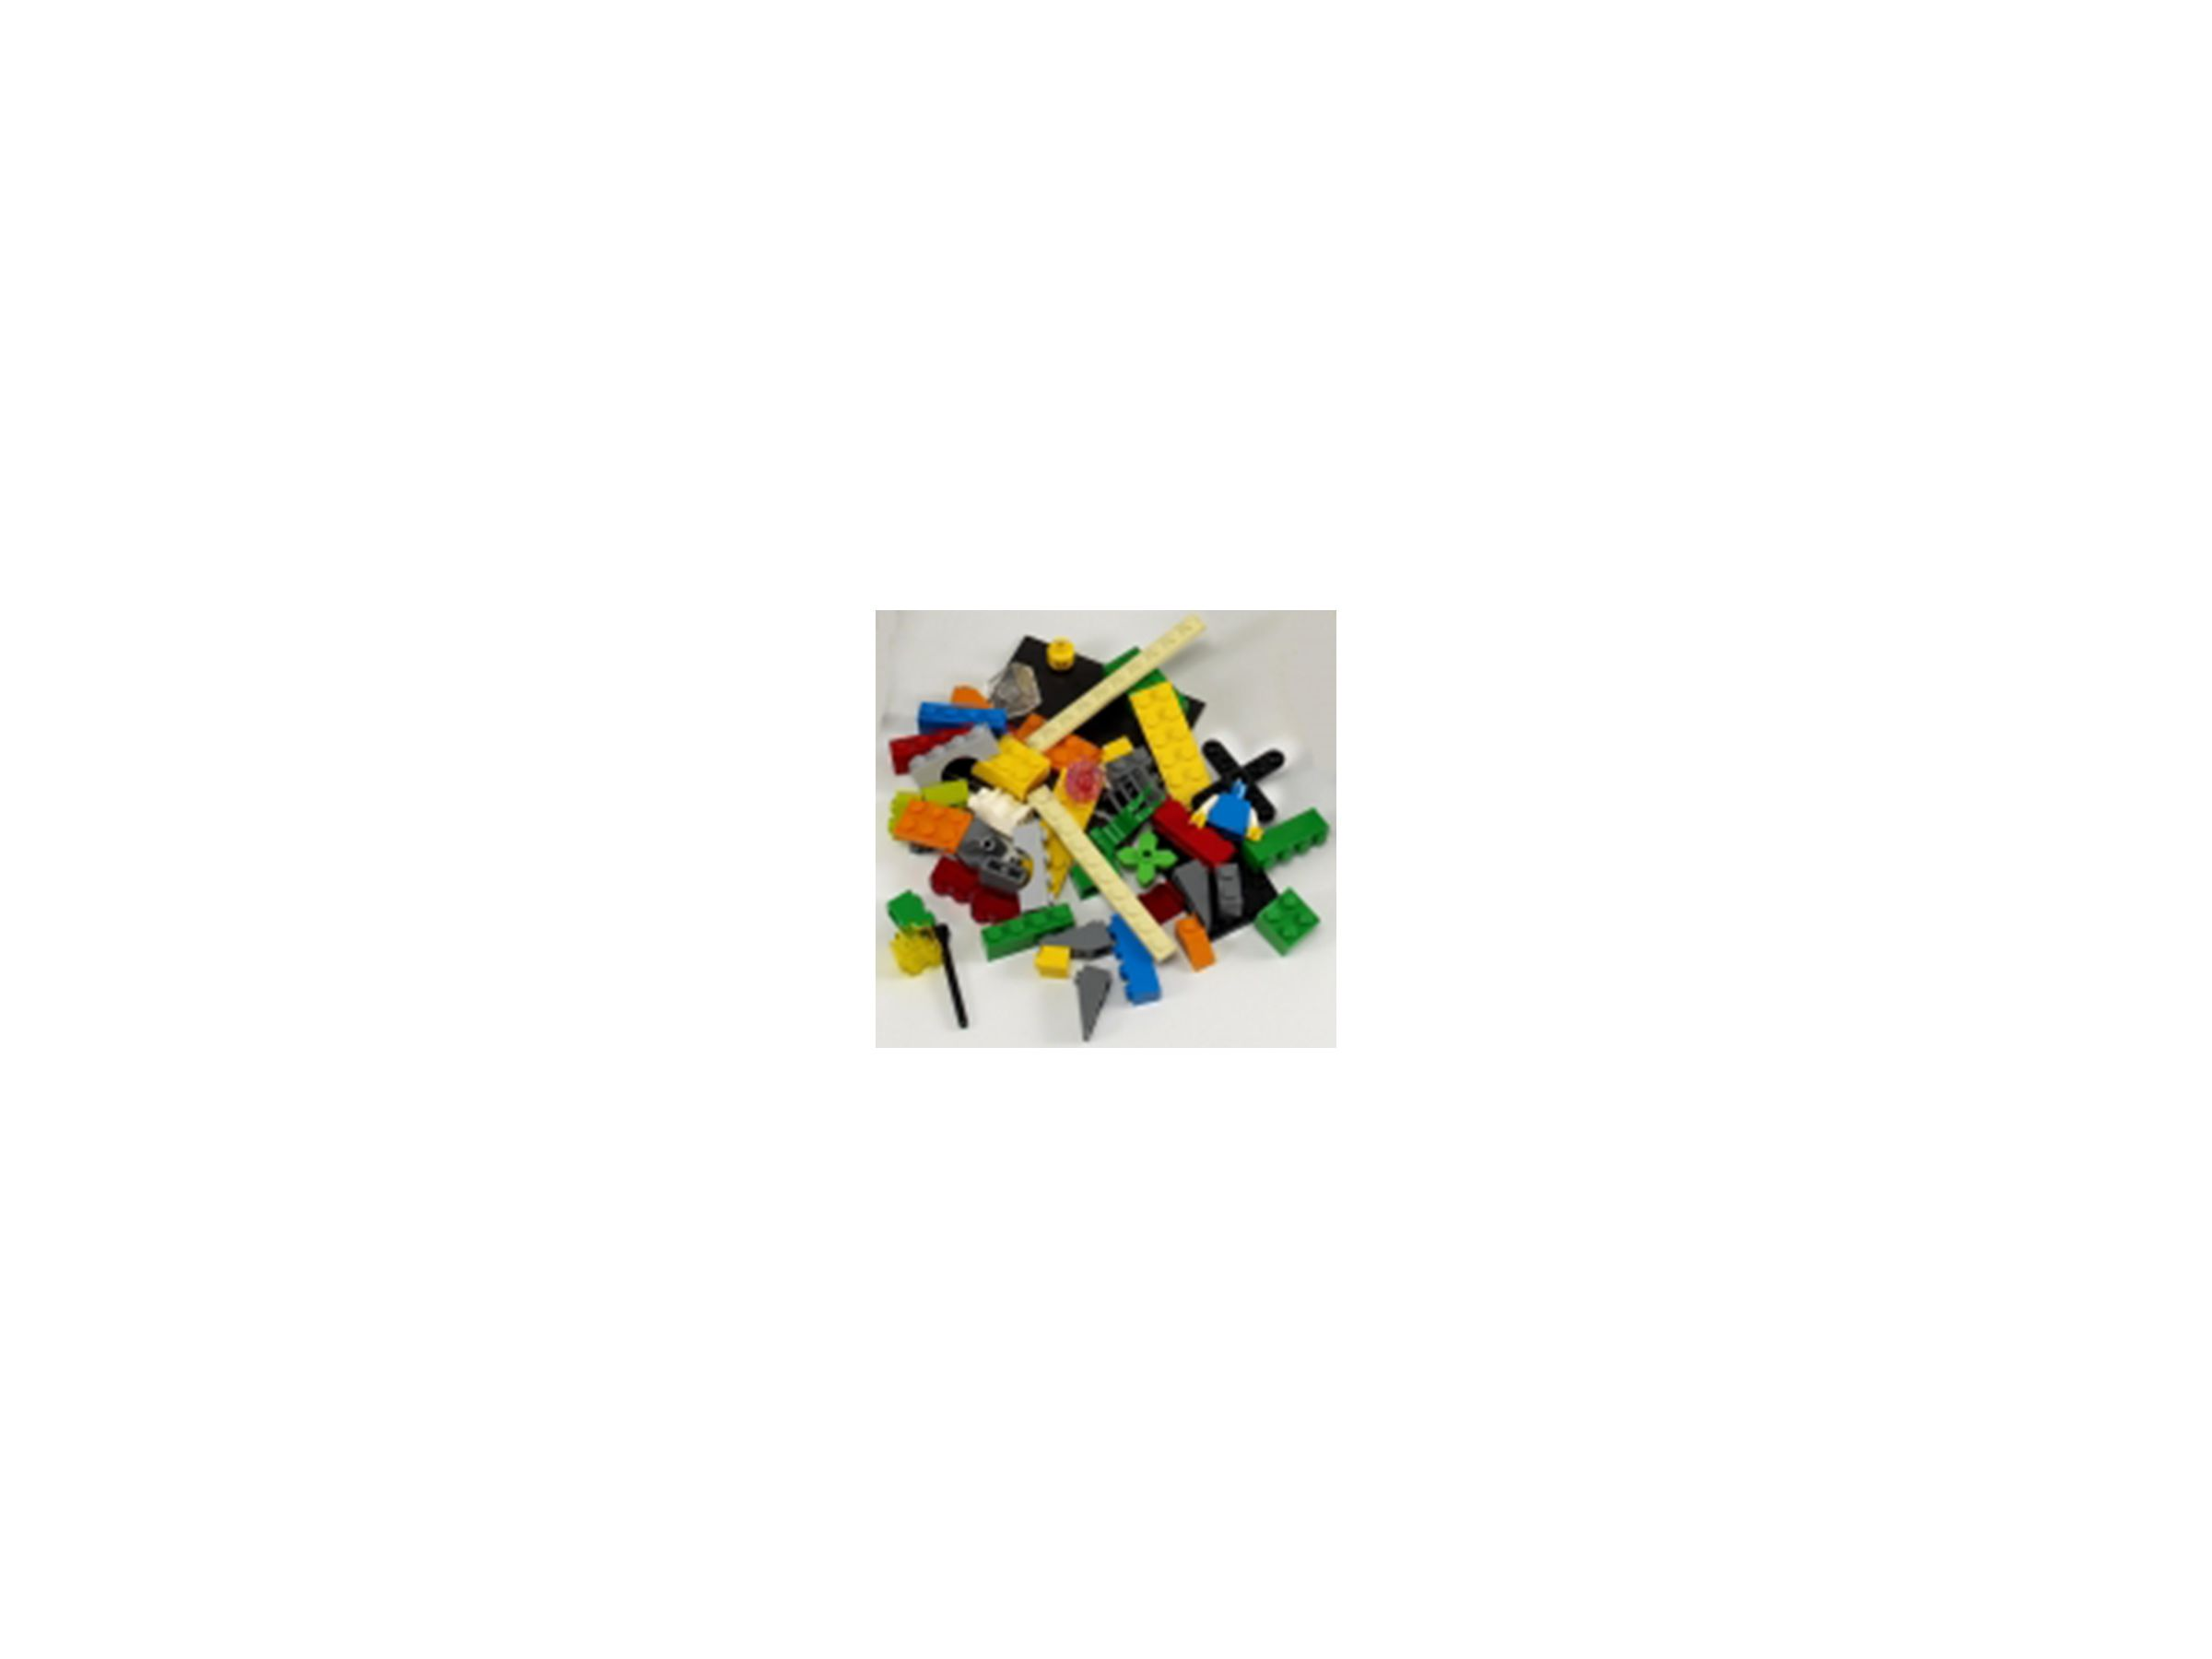 LEGO Serious Play 2000409 Window Exploration Bag LEGO_2000409.jpg